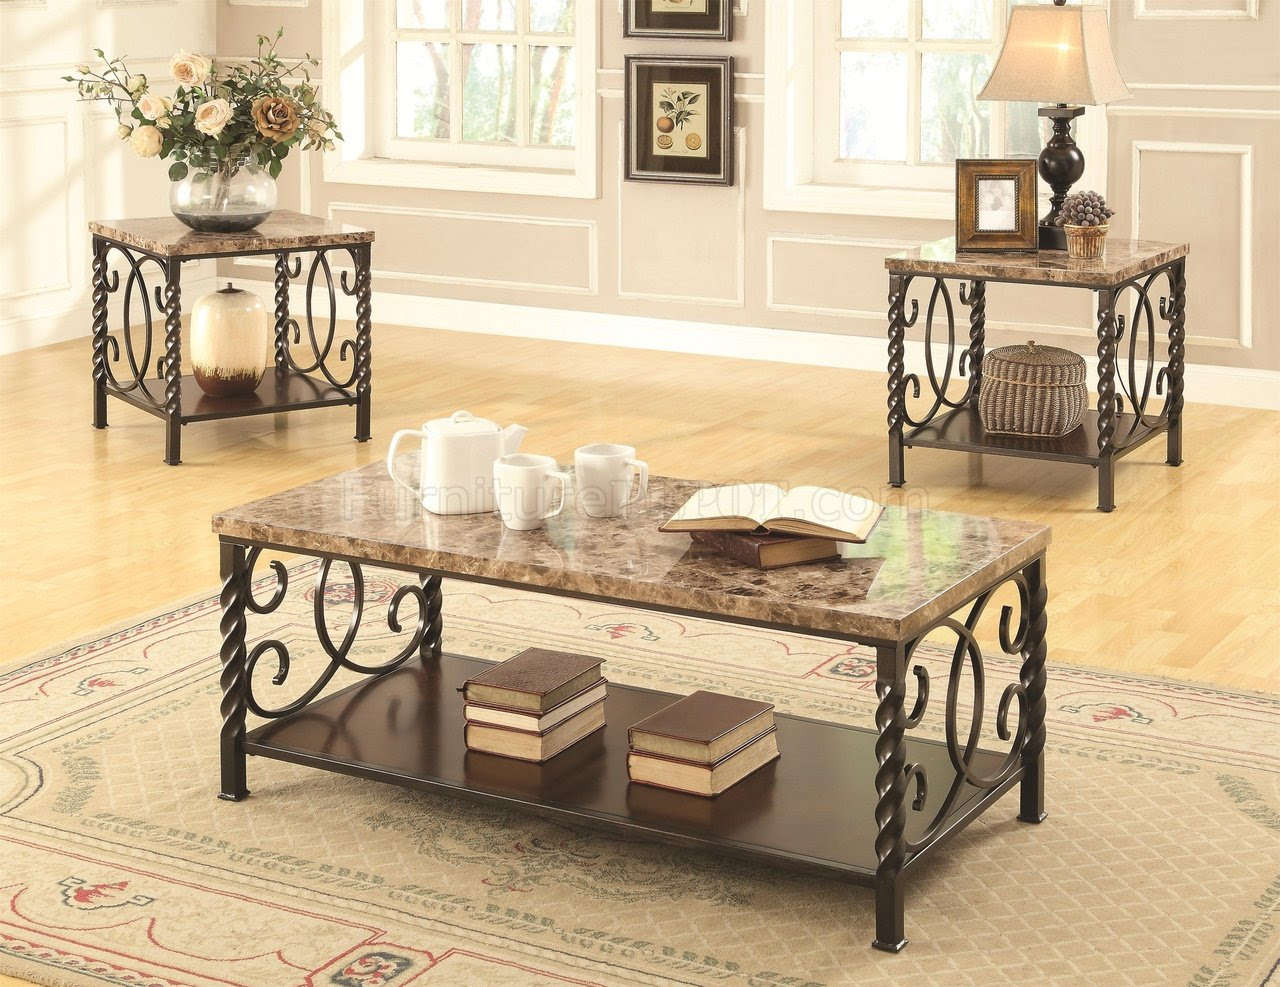 701695 Coffee Table 3Pc Set by Coaster w/Faux Marble Top